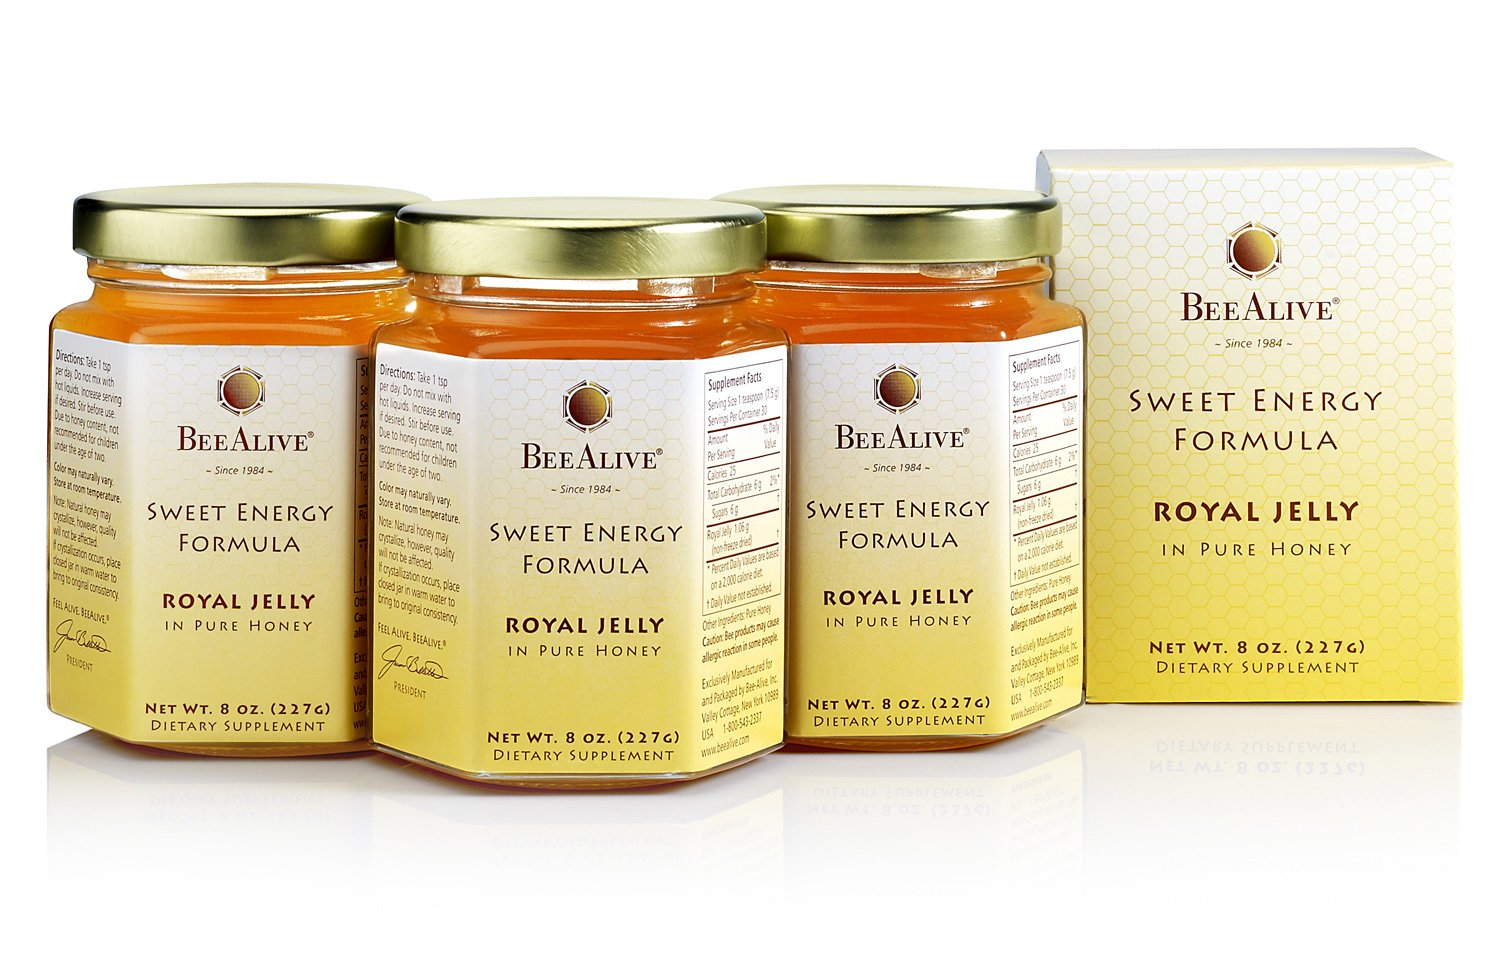 BeeAlive Sweet Energy Formula, Queen's Harvest Royal Jelly and Honey (3 Month Supply)